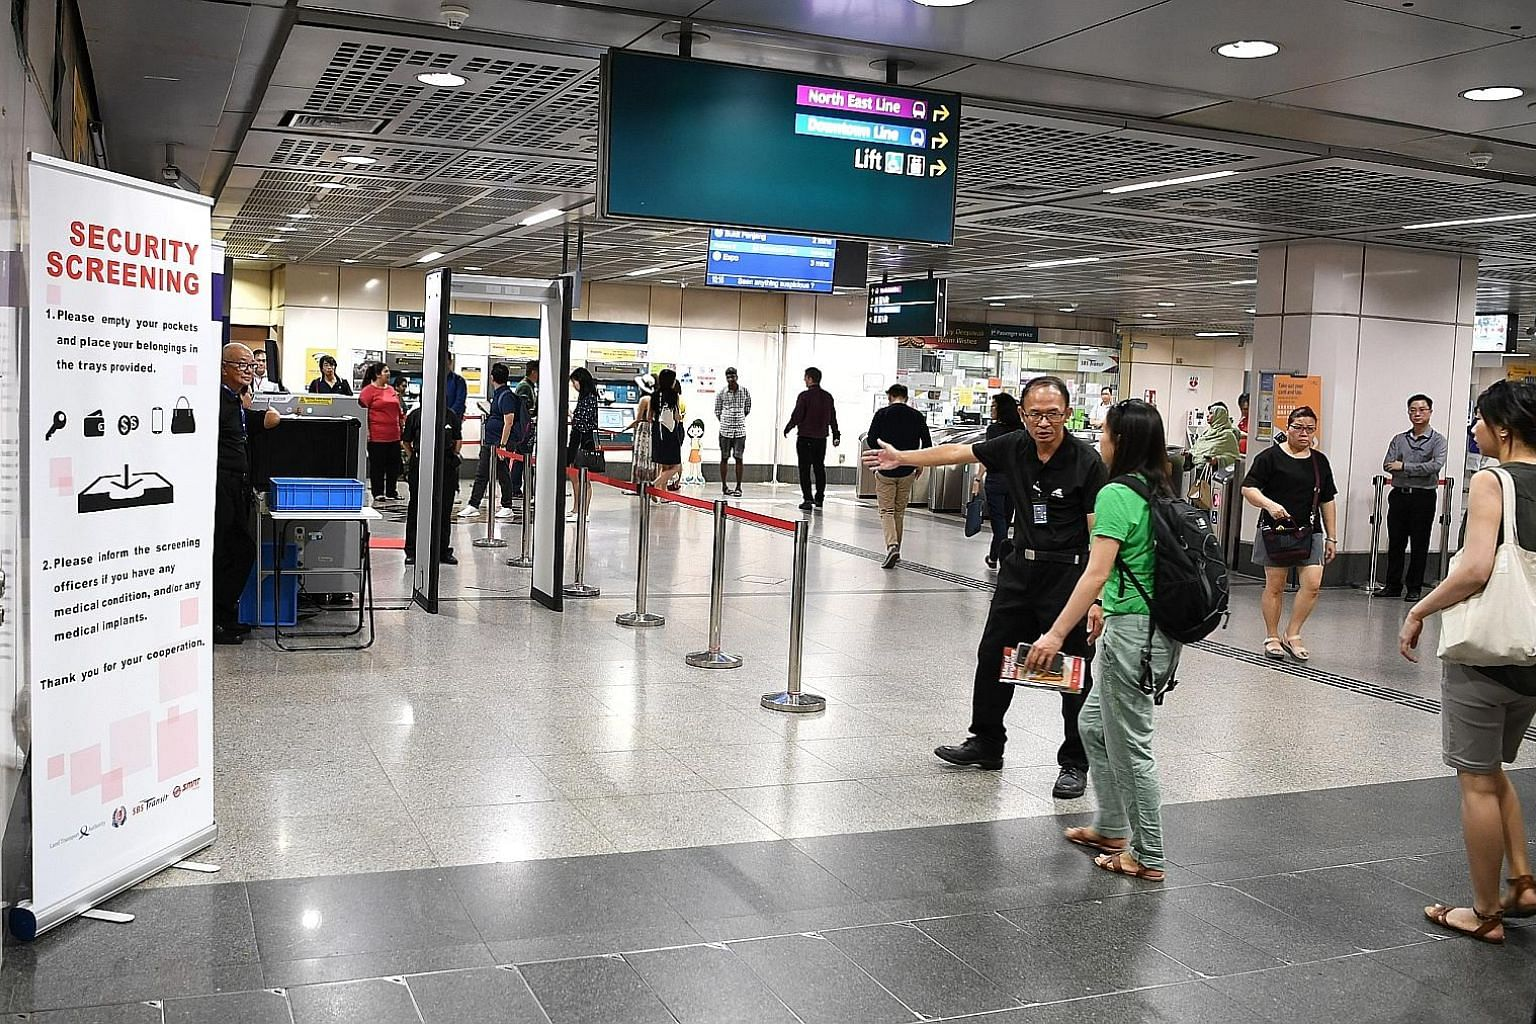 A commuter at Little India MRT station being directed to go through a security screening on the first day of the trial yesterday. The Land Transport Authority said the trial will be conducted at up to six stations across the rail network and that not